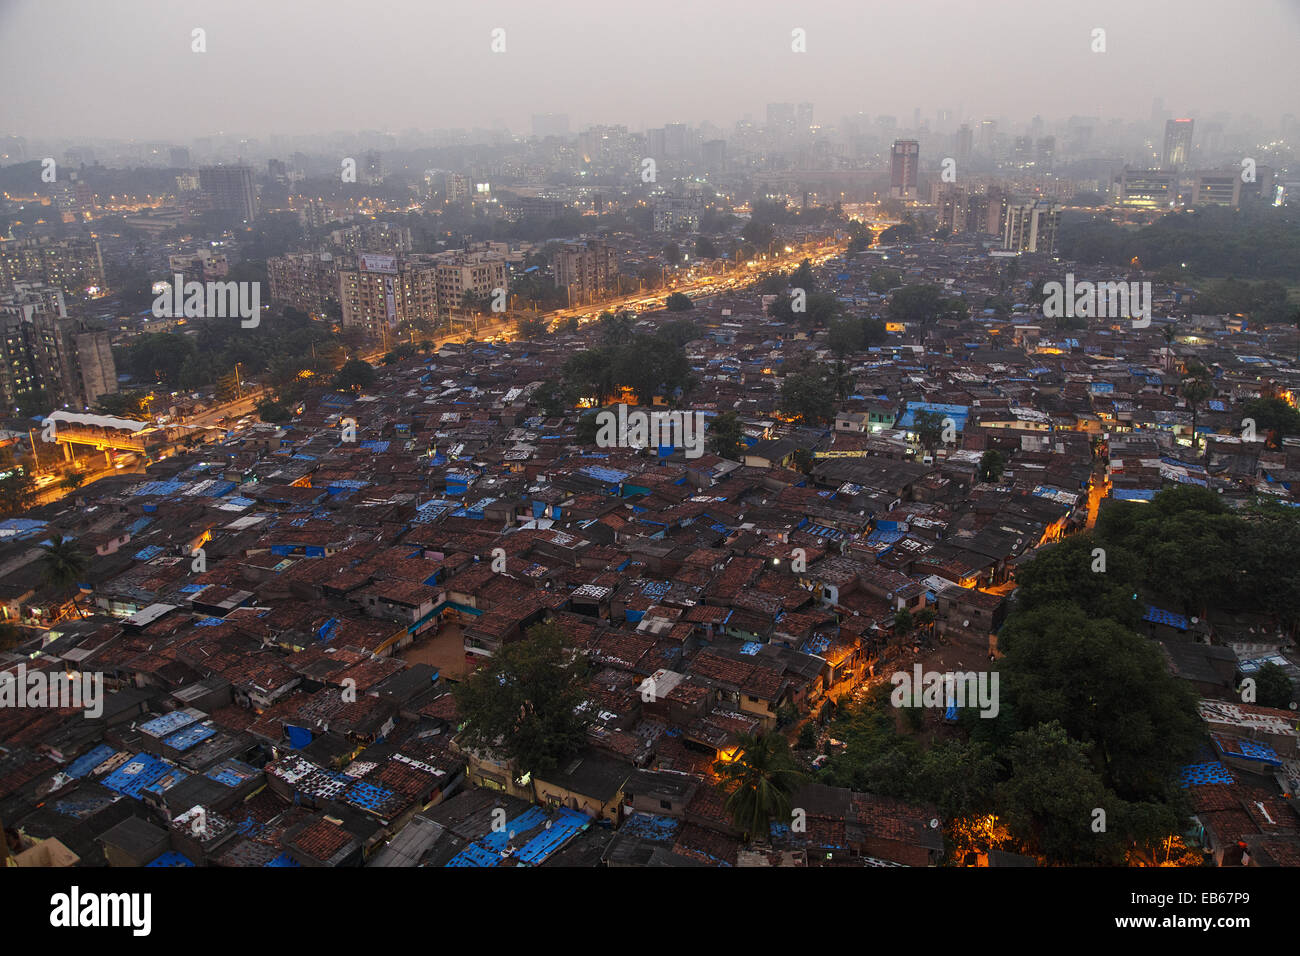 An view over a slum in Jogeshwari - Goreagaon East area in the suburbs of Mumbai, India. - Stock Image